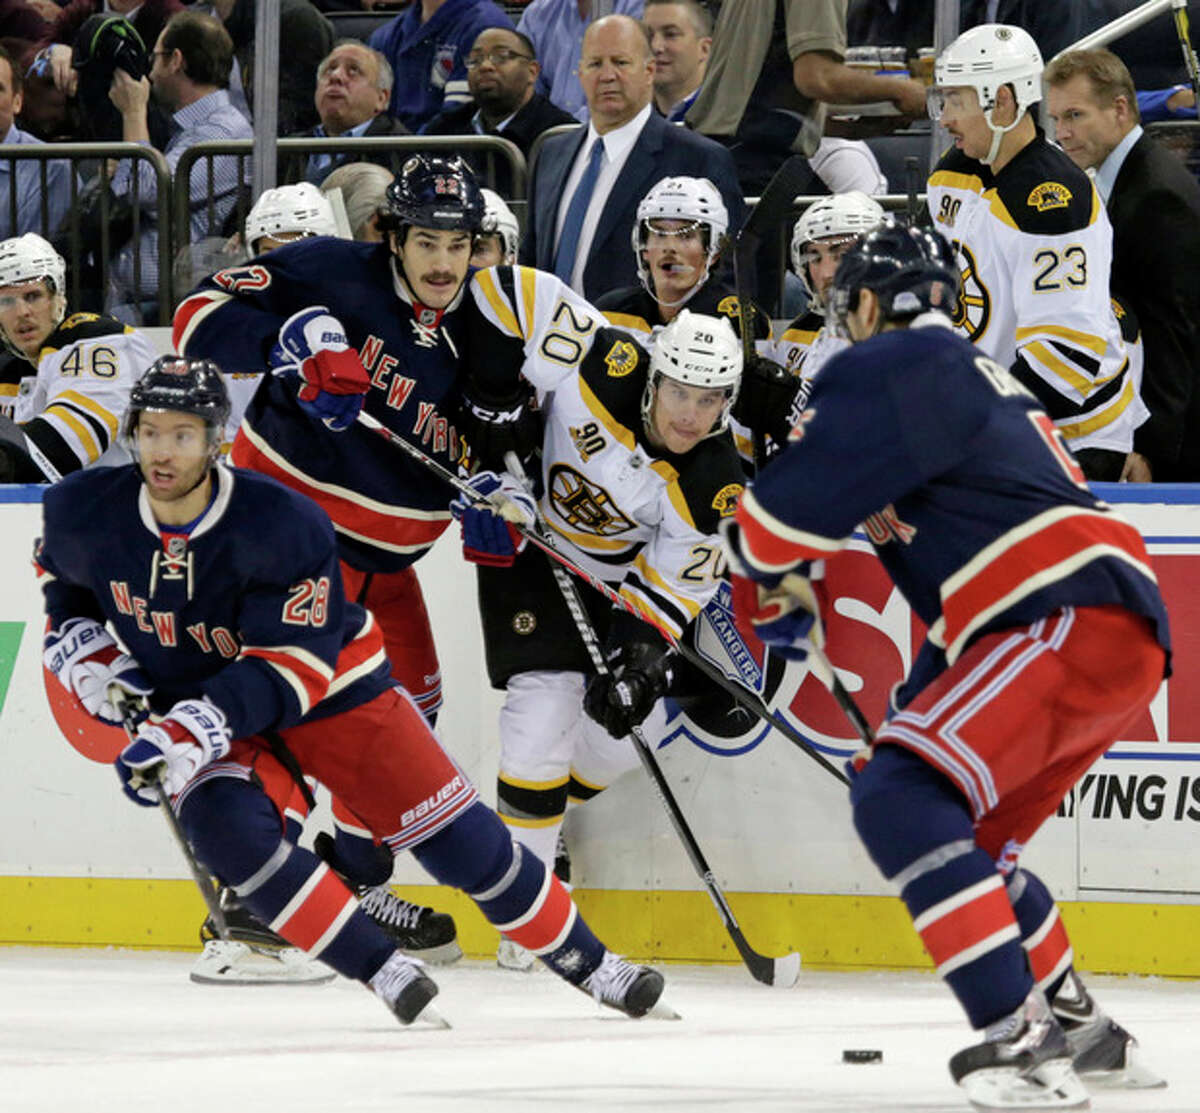 New York Rangers center Brian Boyle (22) passes to New York Rangers defenseman Dan Girardi (5), right foreground, with Boston Bruins left wing Daniel Paille (20) defending in the first period of their NHL hockey game at Madison Square Garden in New York, Tuesday, Nov. 19, 2013. (AP Photo/Kathy Willens)